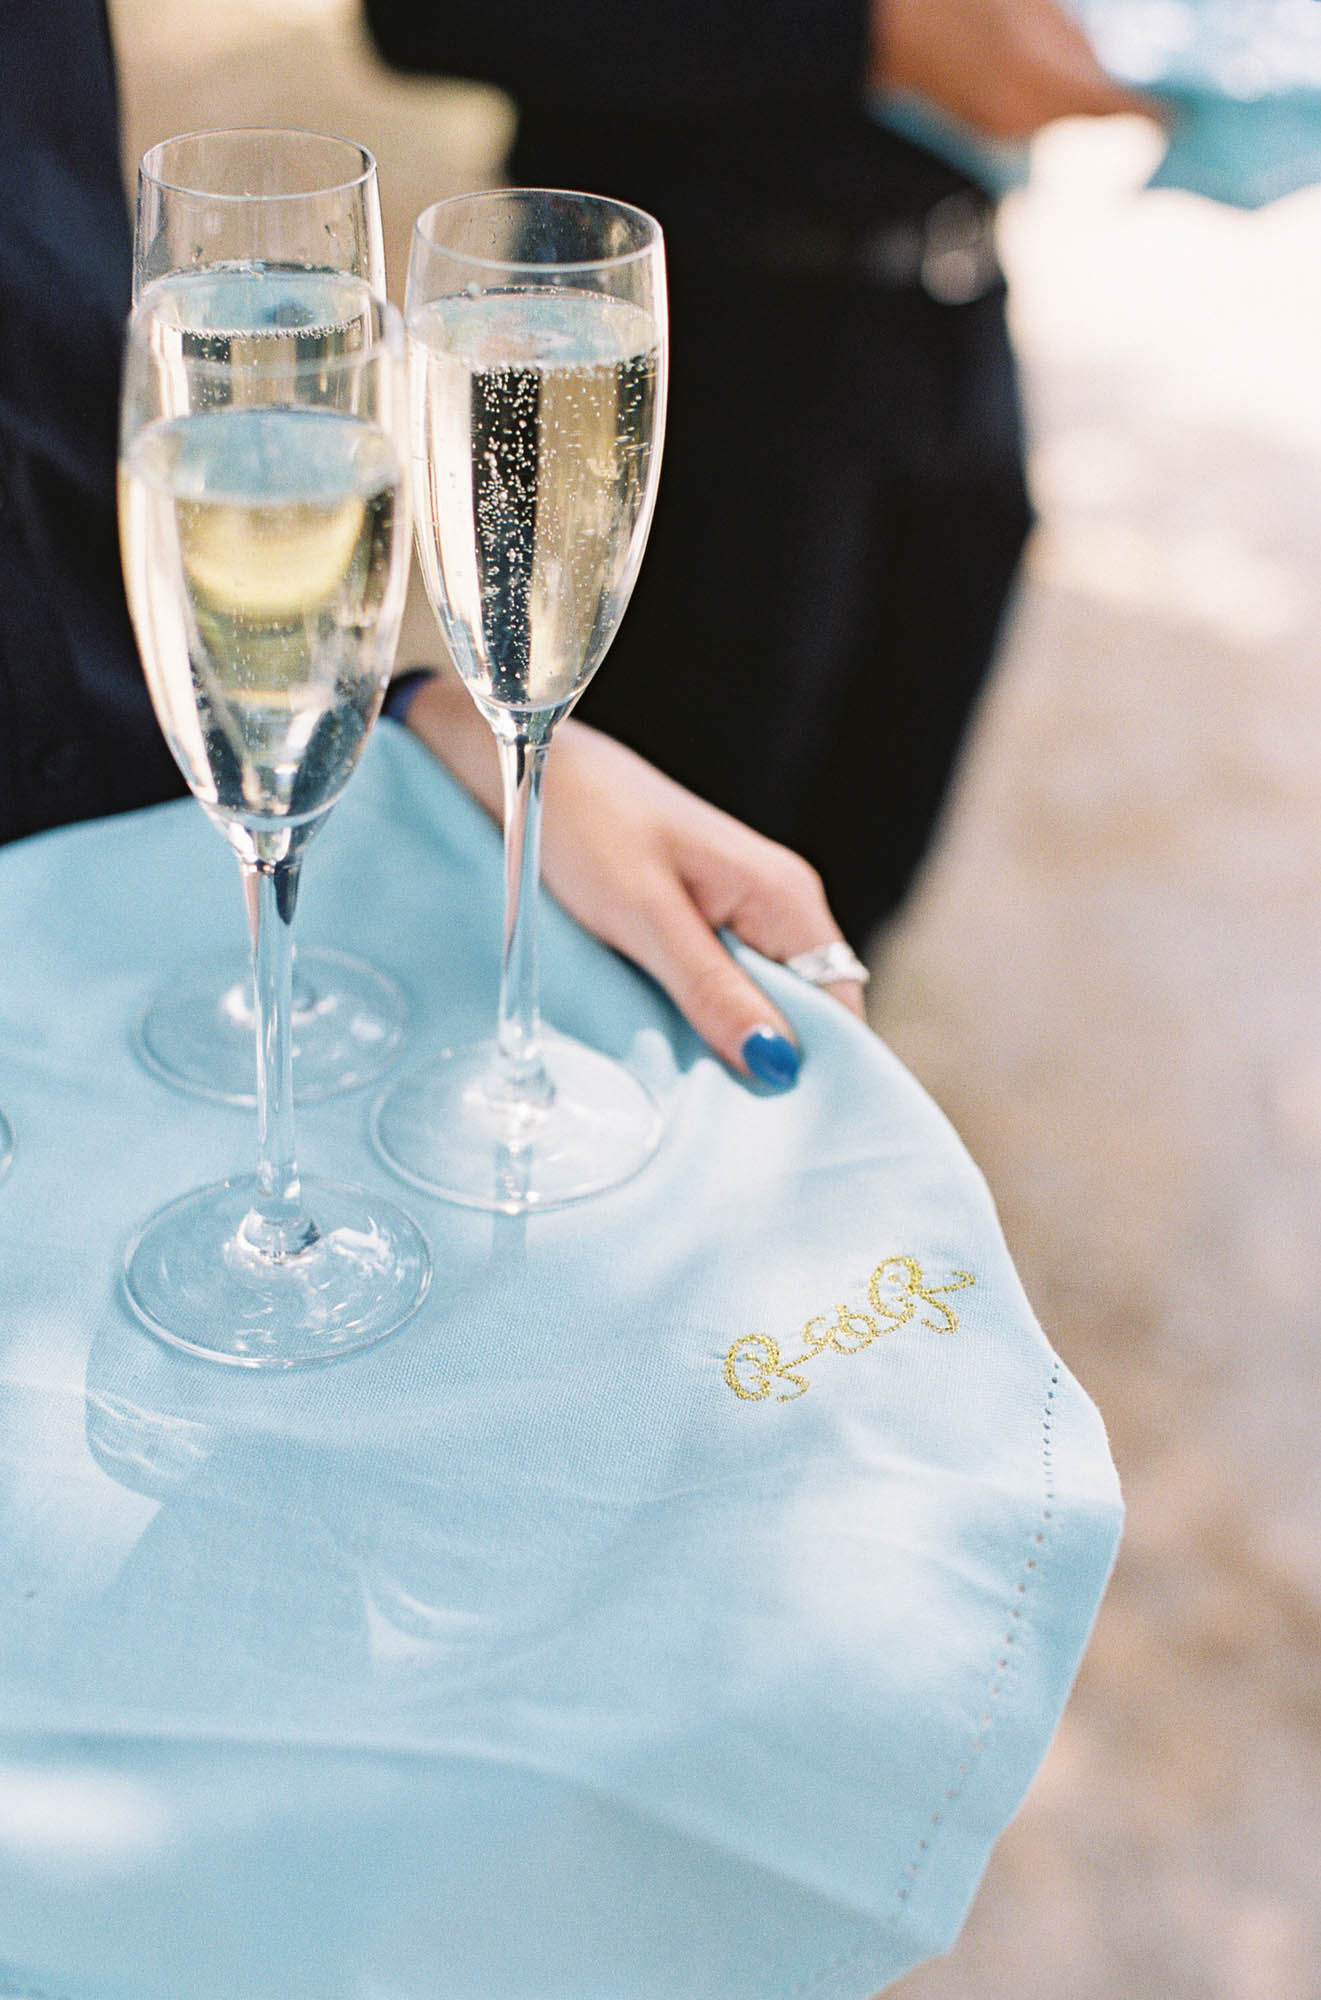 Champagne glasses on blue monogramed blue linen napkins